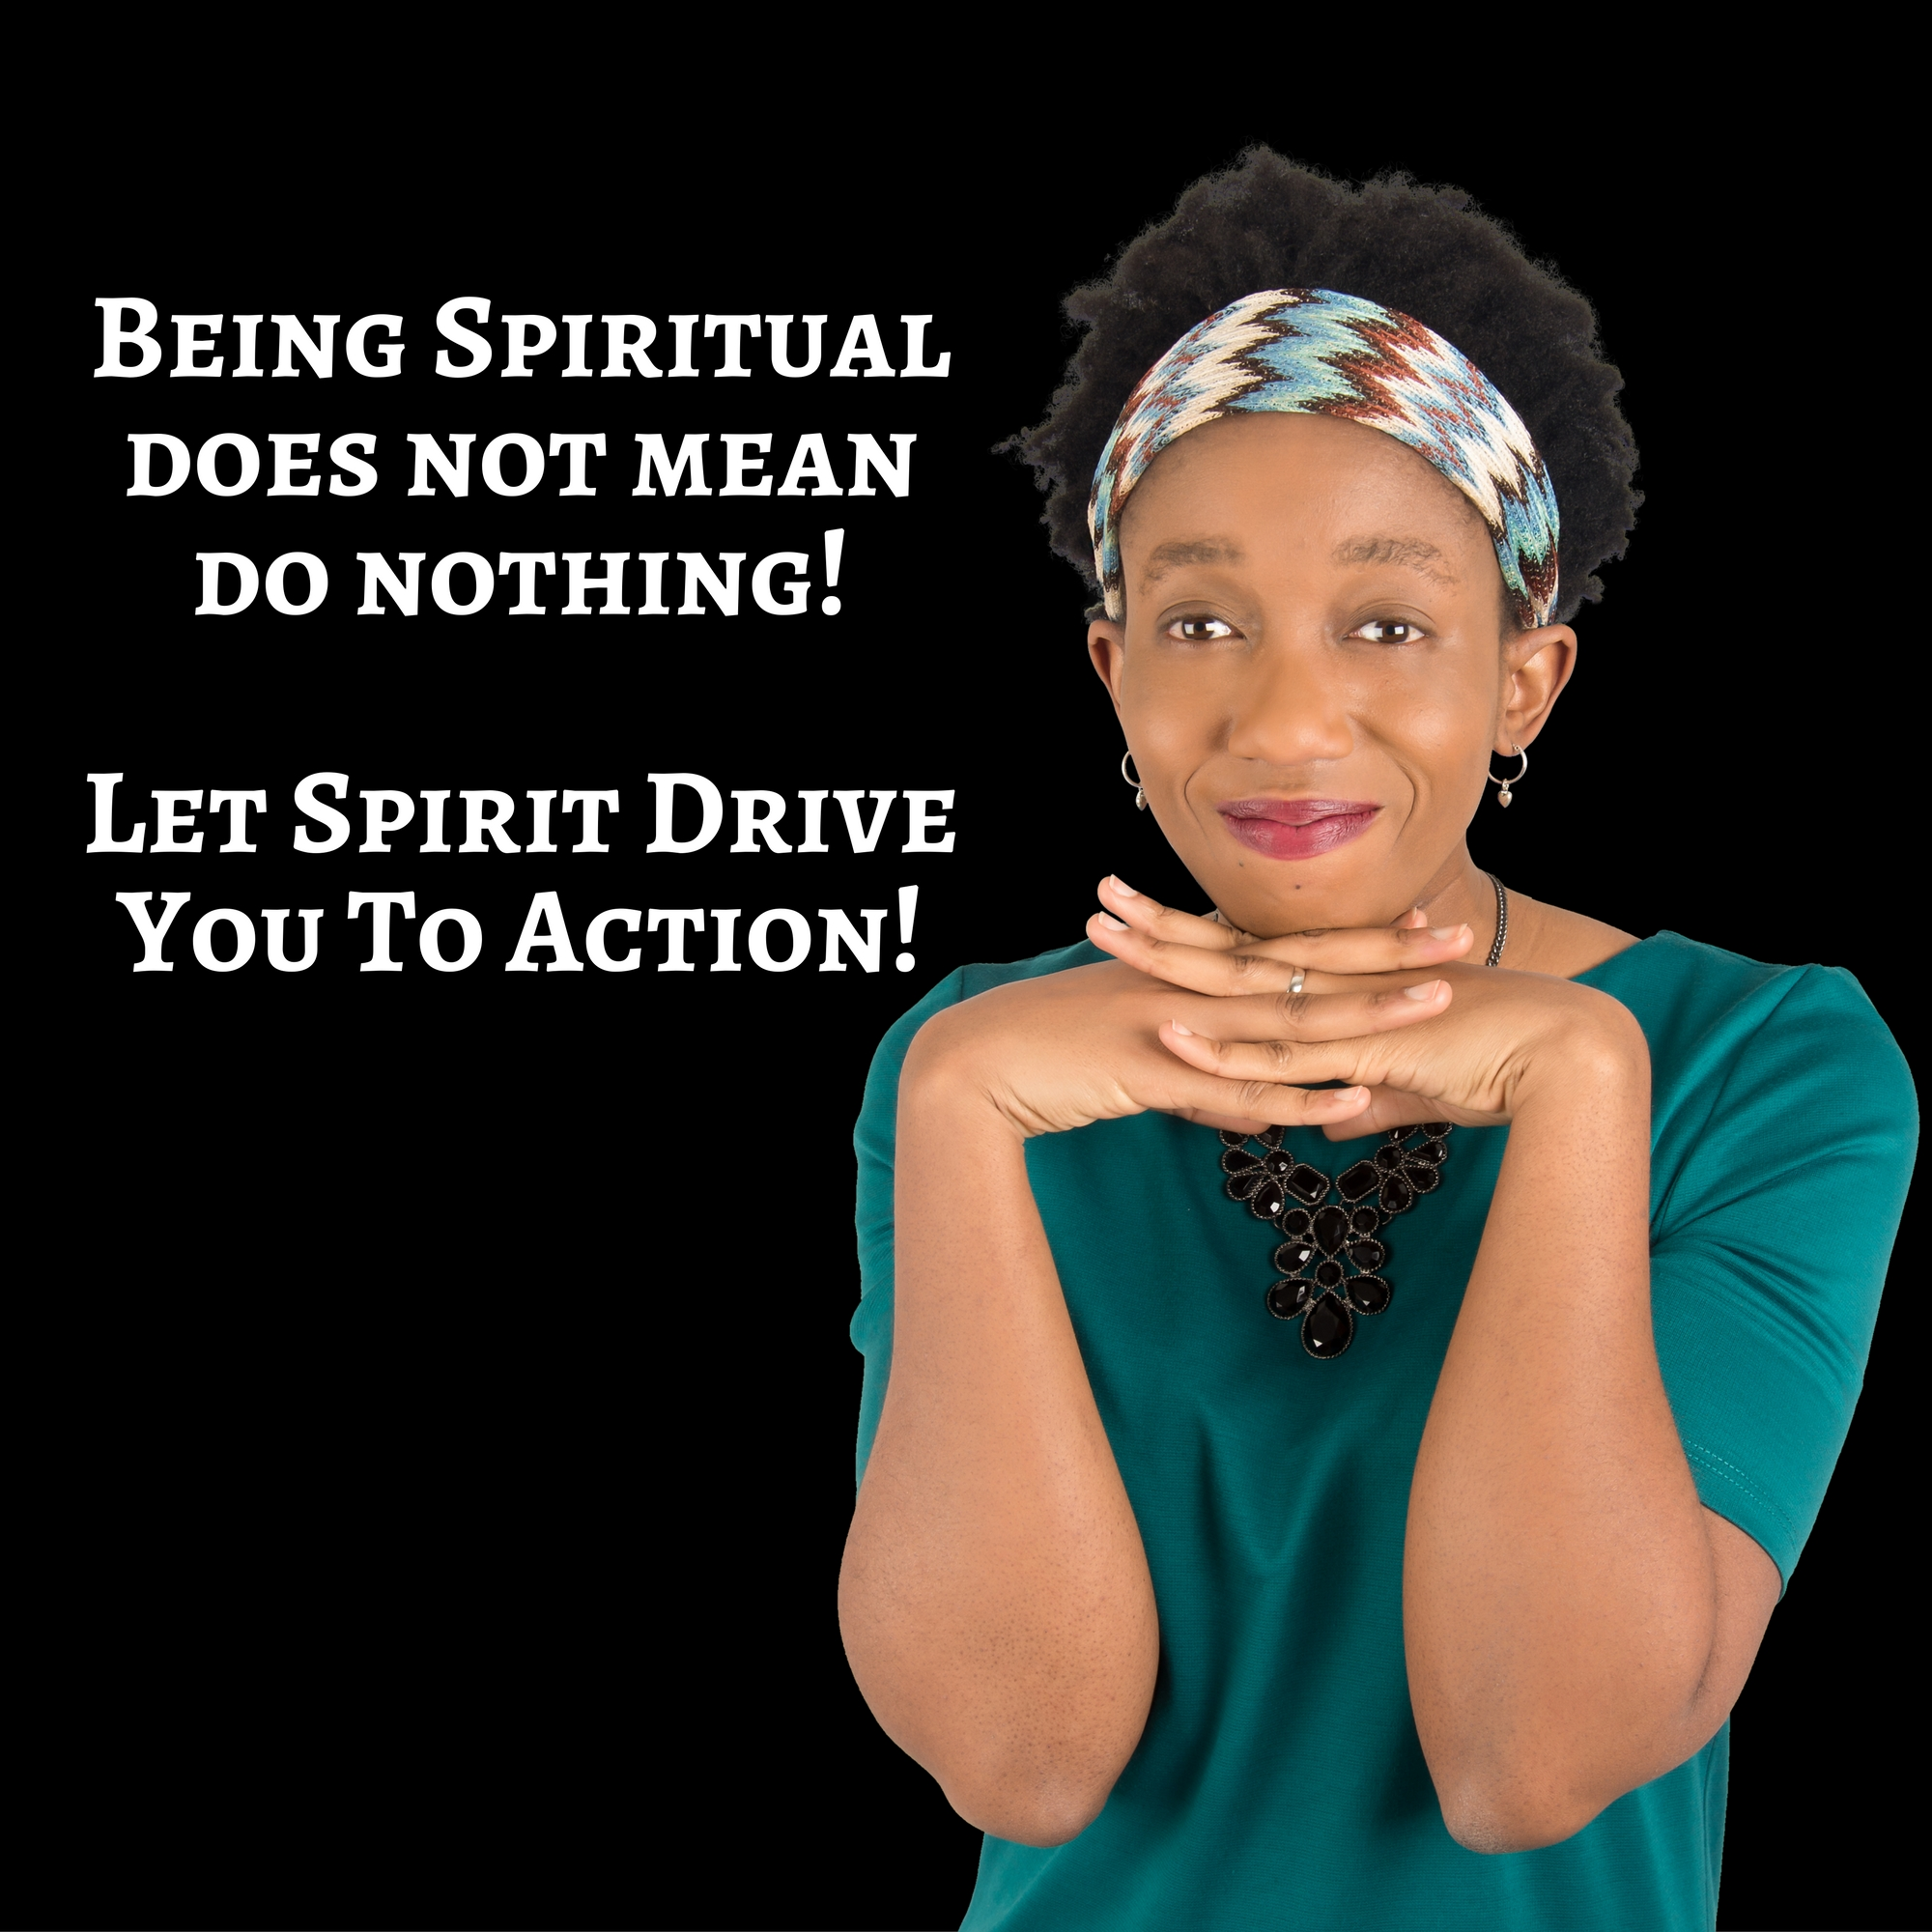 Being Spiritual Does Not Mean Doing Nothing